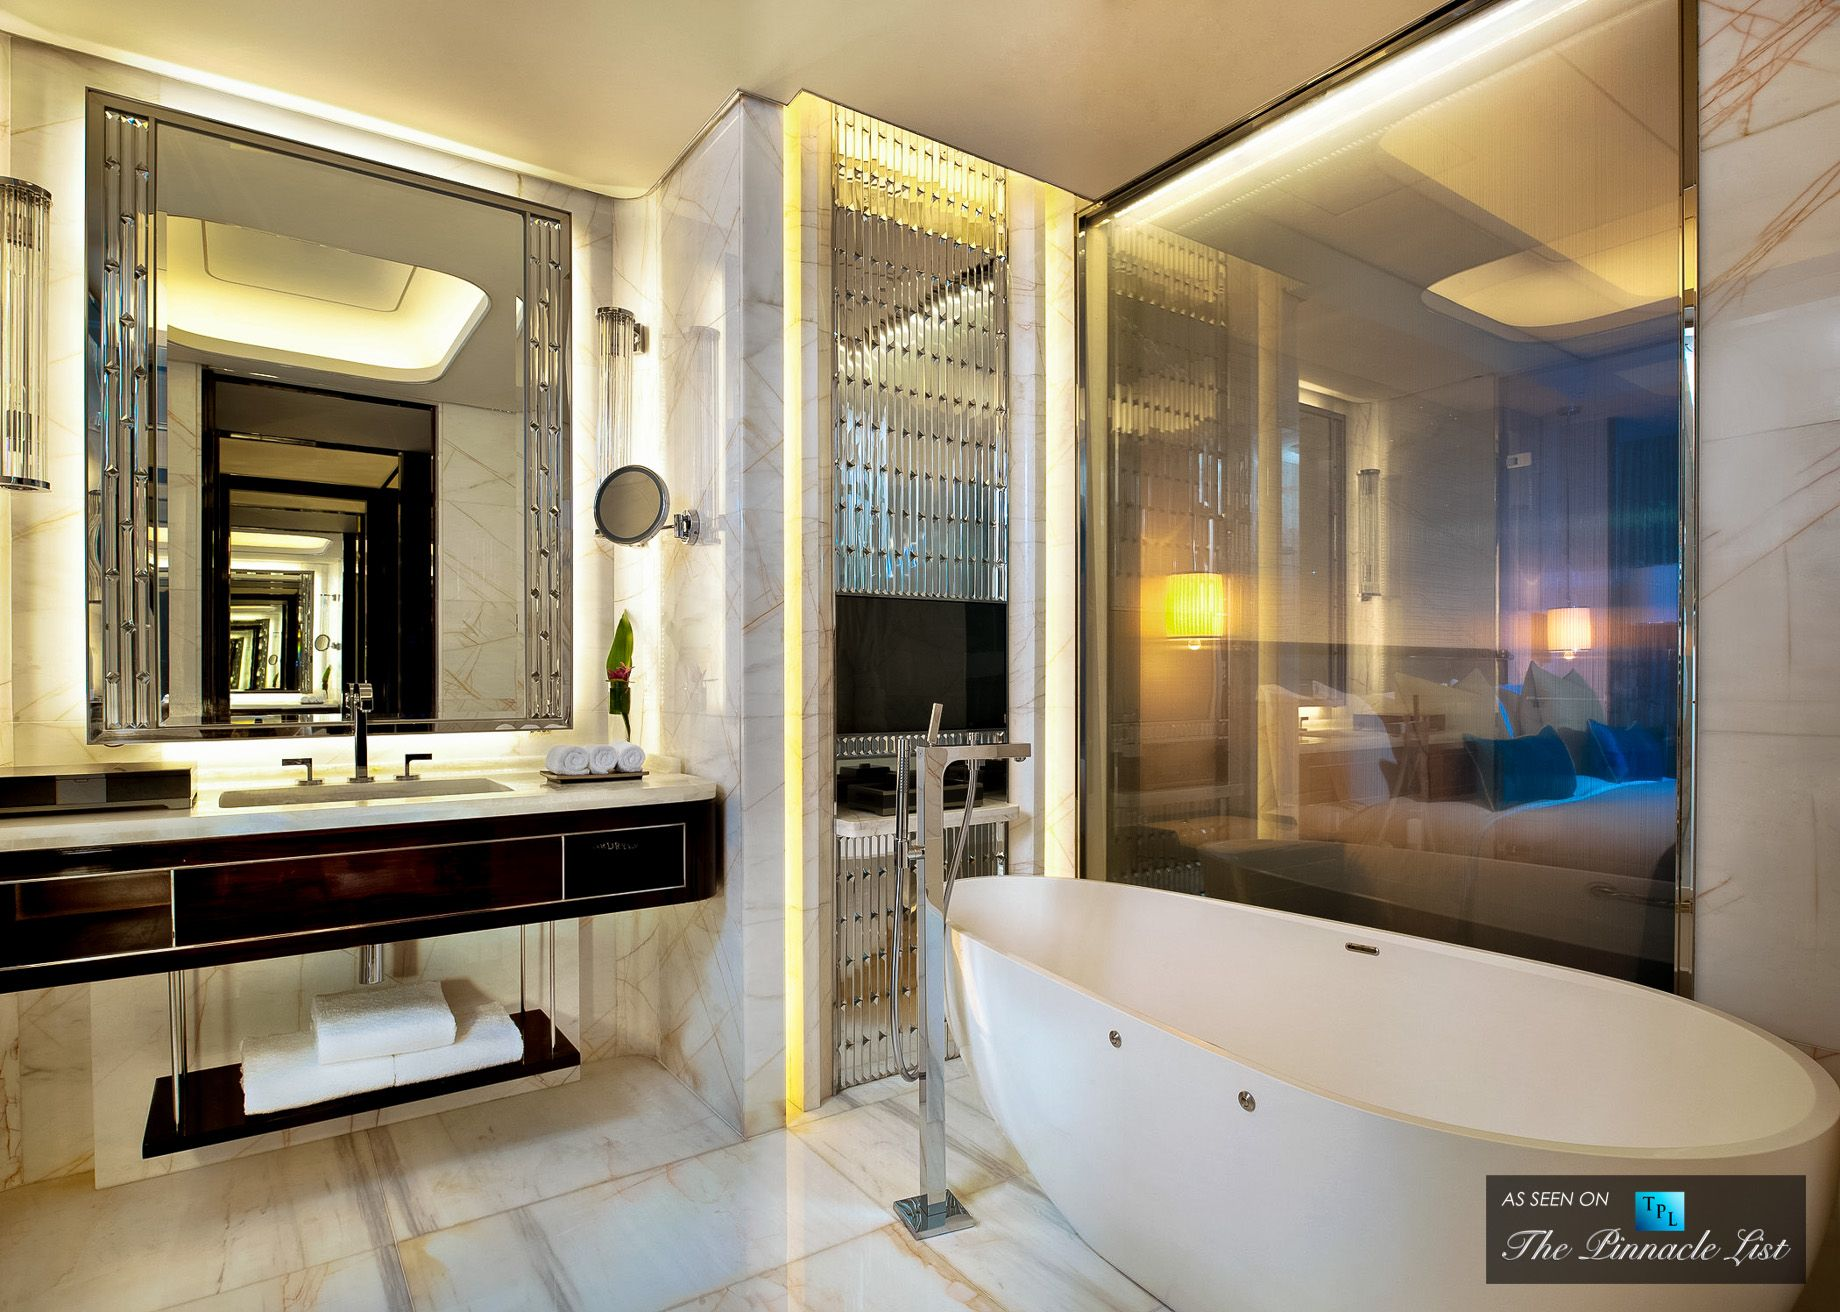 St regis luxury hotel shenzhen china deluxe bathroom for Hotel luxury